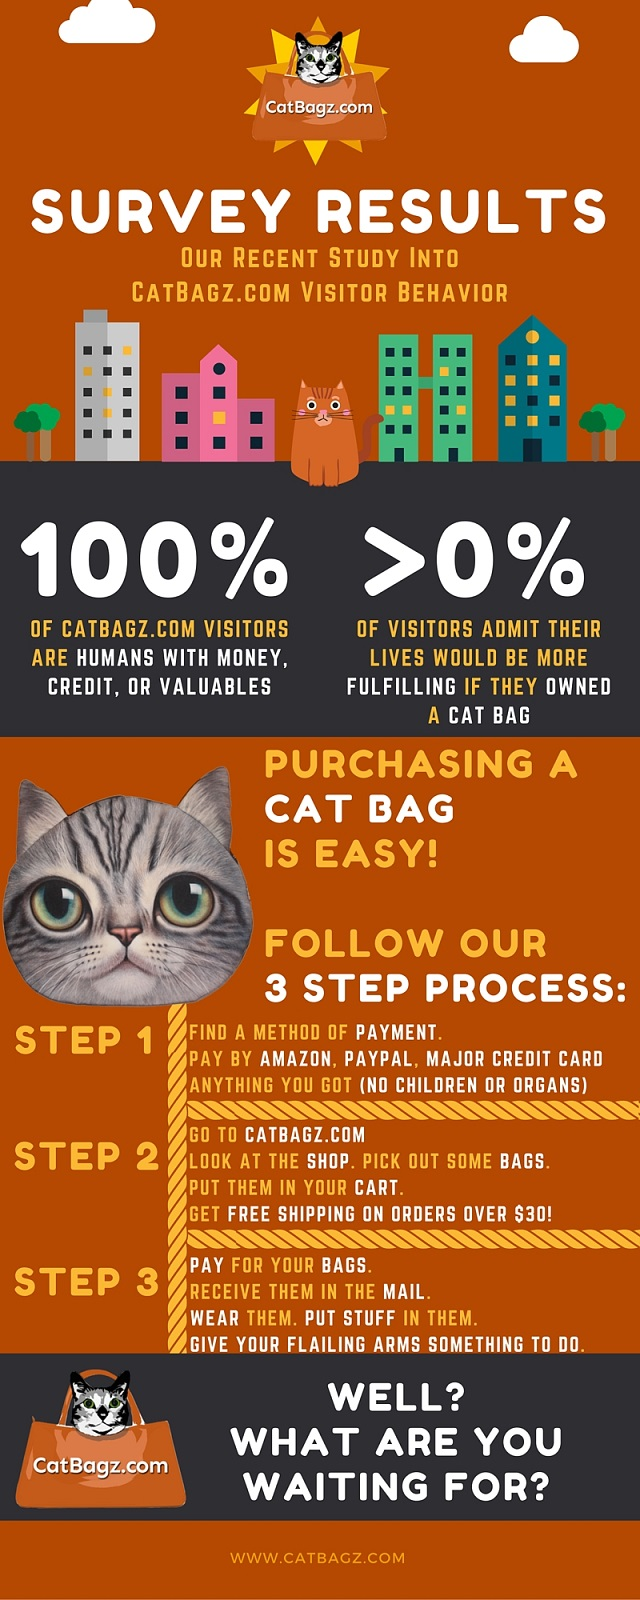 The CatBagz.com Scientific Survey Says You Need to Buy Some Cat Faced Bags in Short Order.